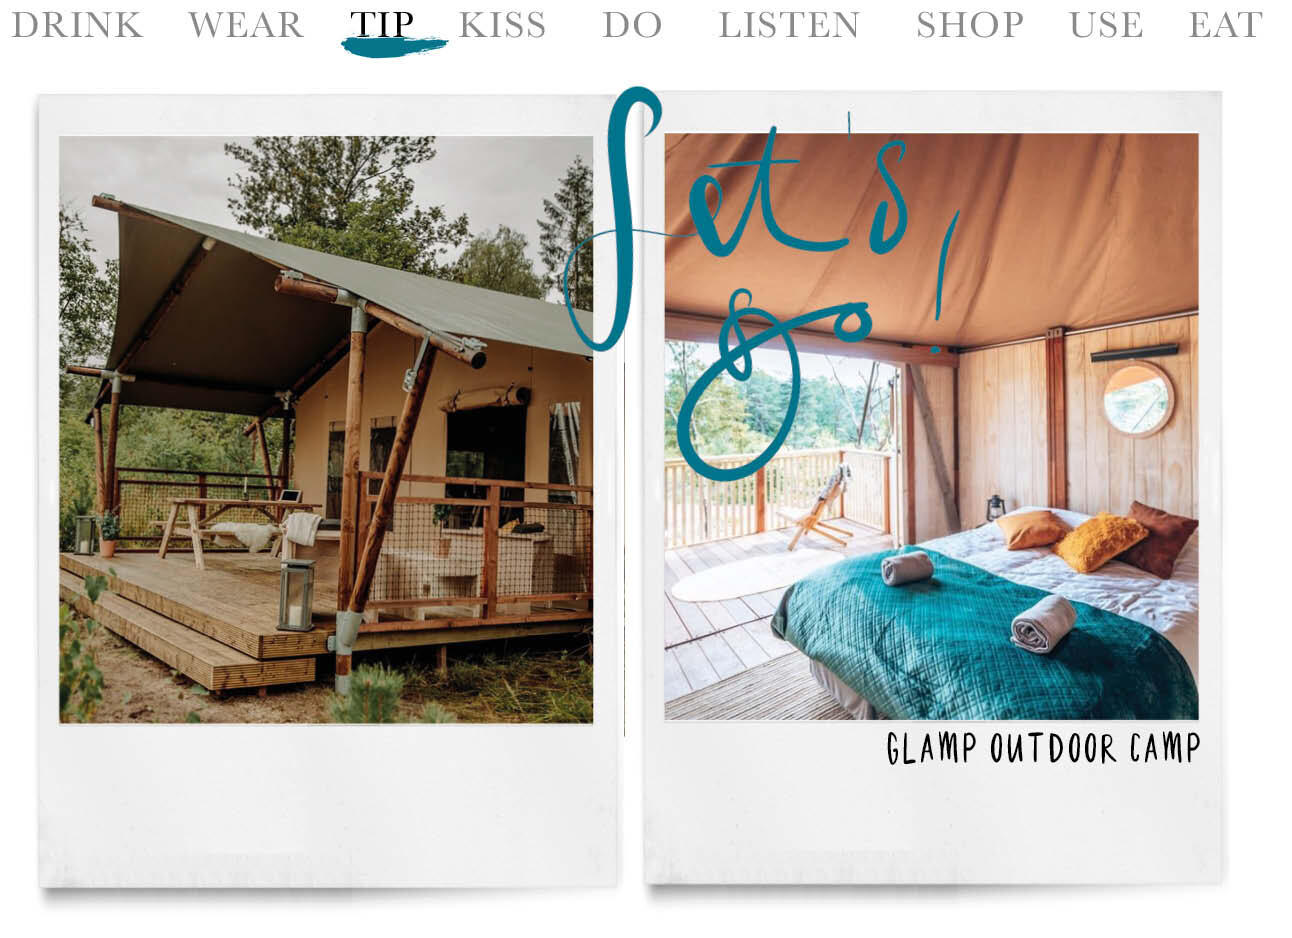 Today we tip Glamp Outdoor Camp